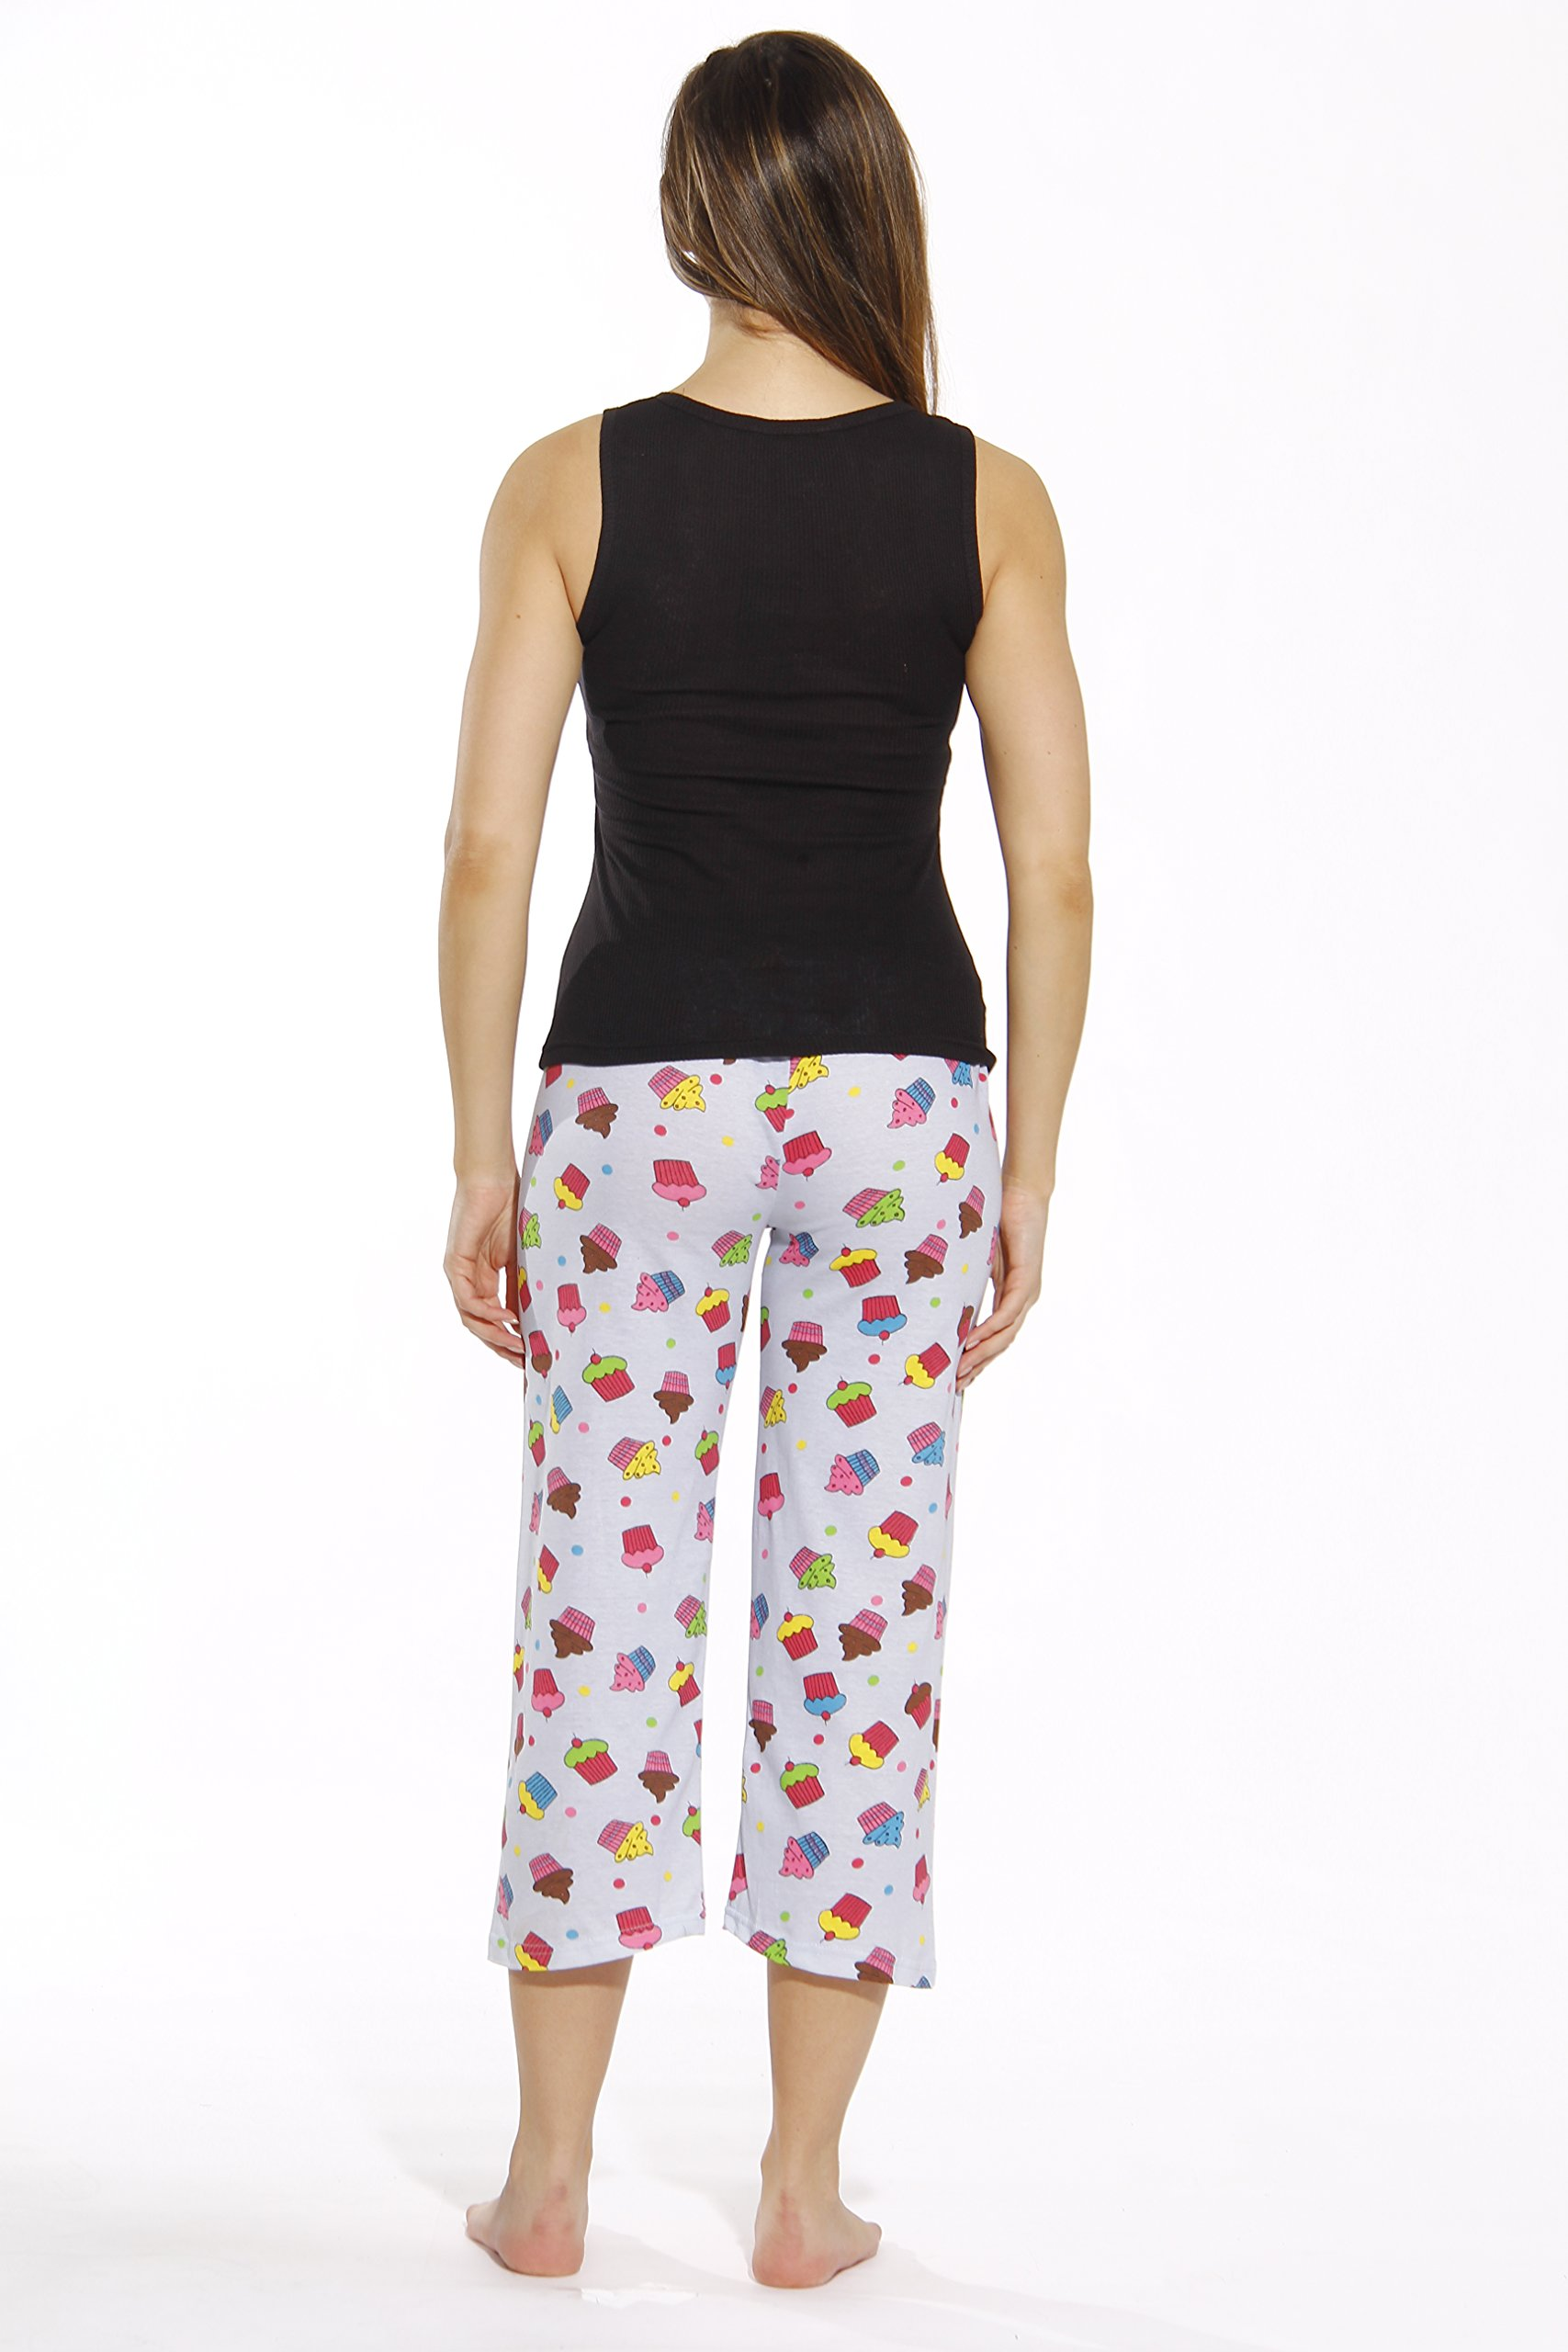 Just Love 6329-10008-XL Capri Sets/Women Sleepwear/Womans Pajamas/PJS by Just Love (Image #3)